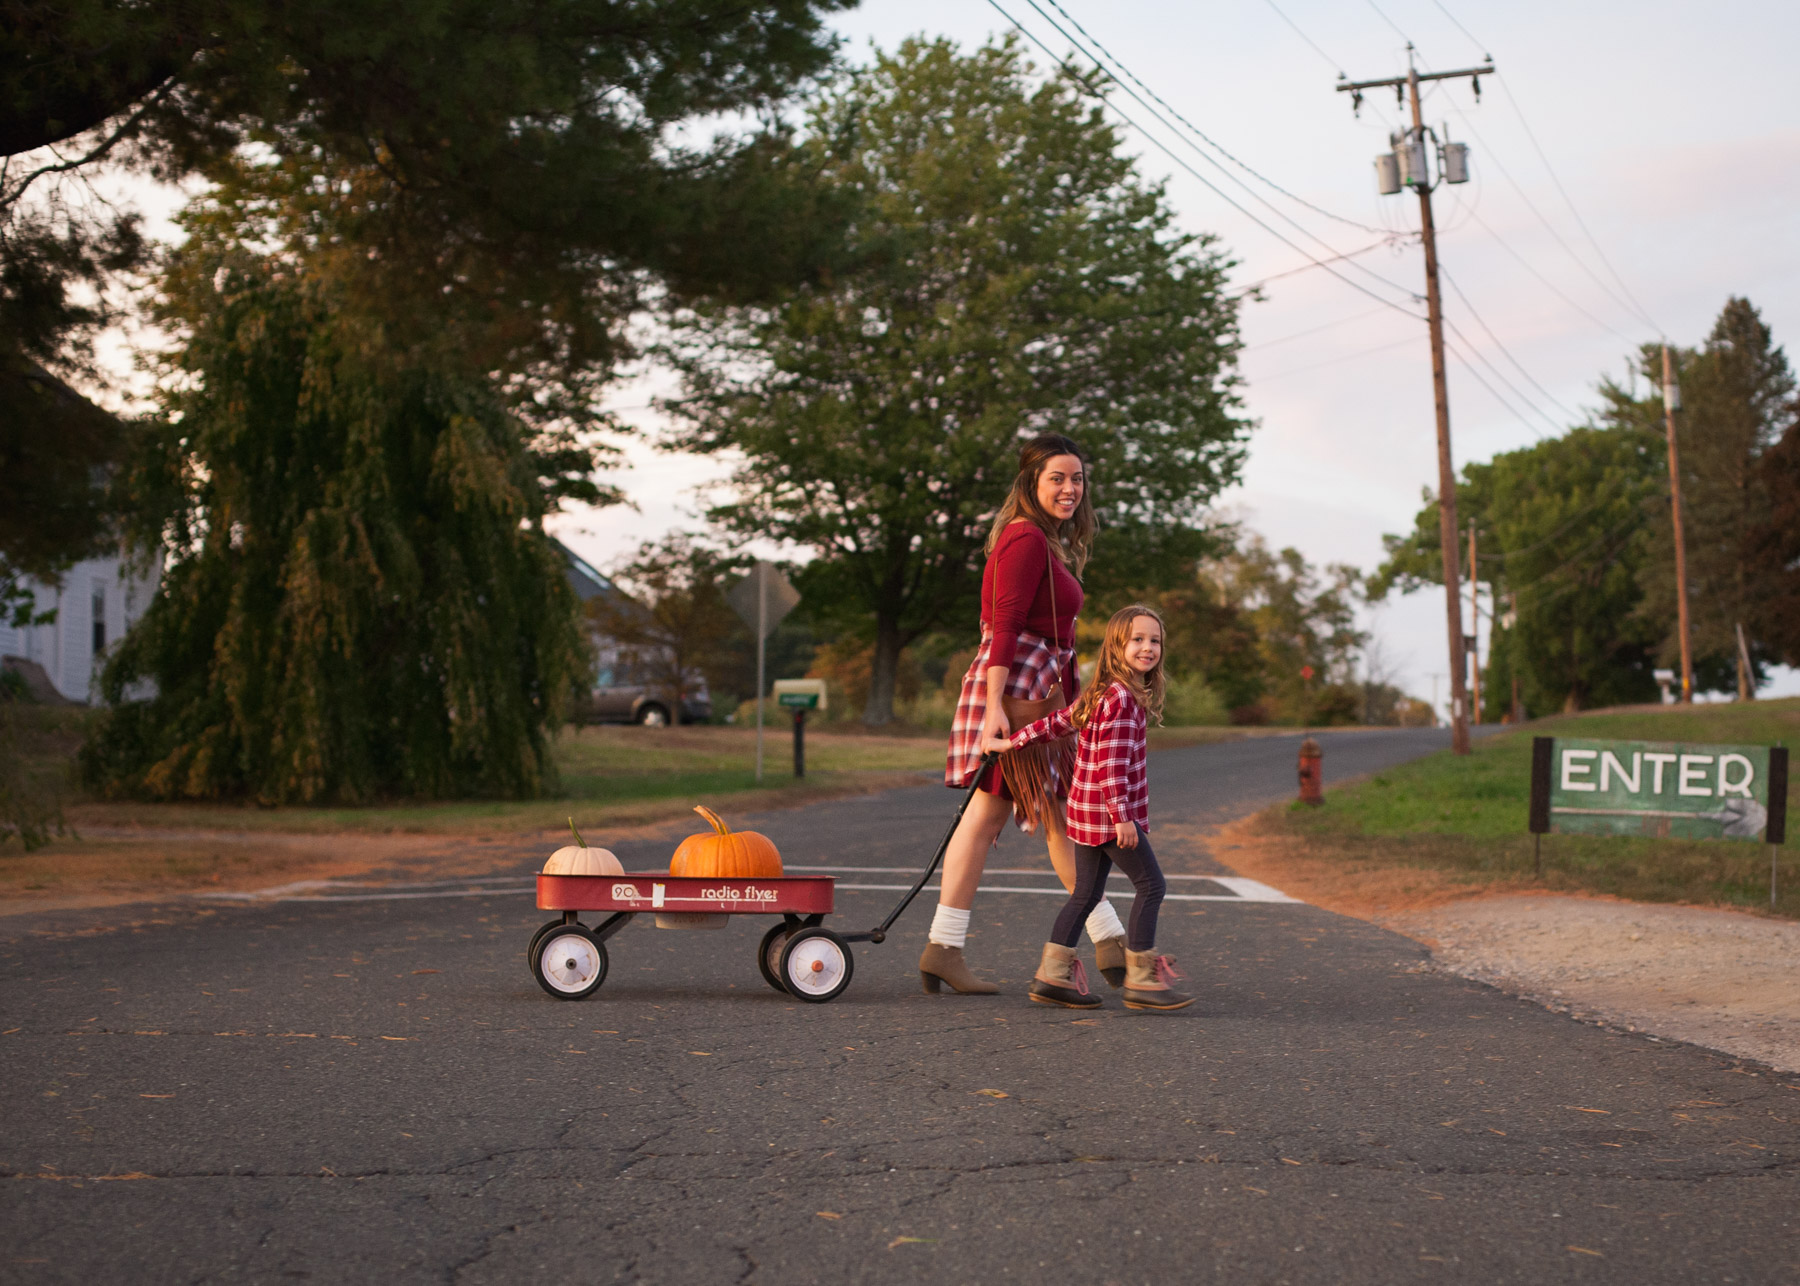 Woman and young girl, wearing matching burgundy and plaid outfits, cross the street pulling their pumpkins in a red radio flyer wagon.